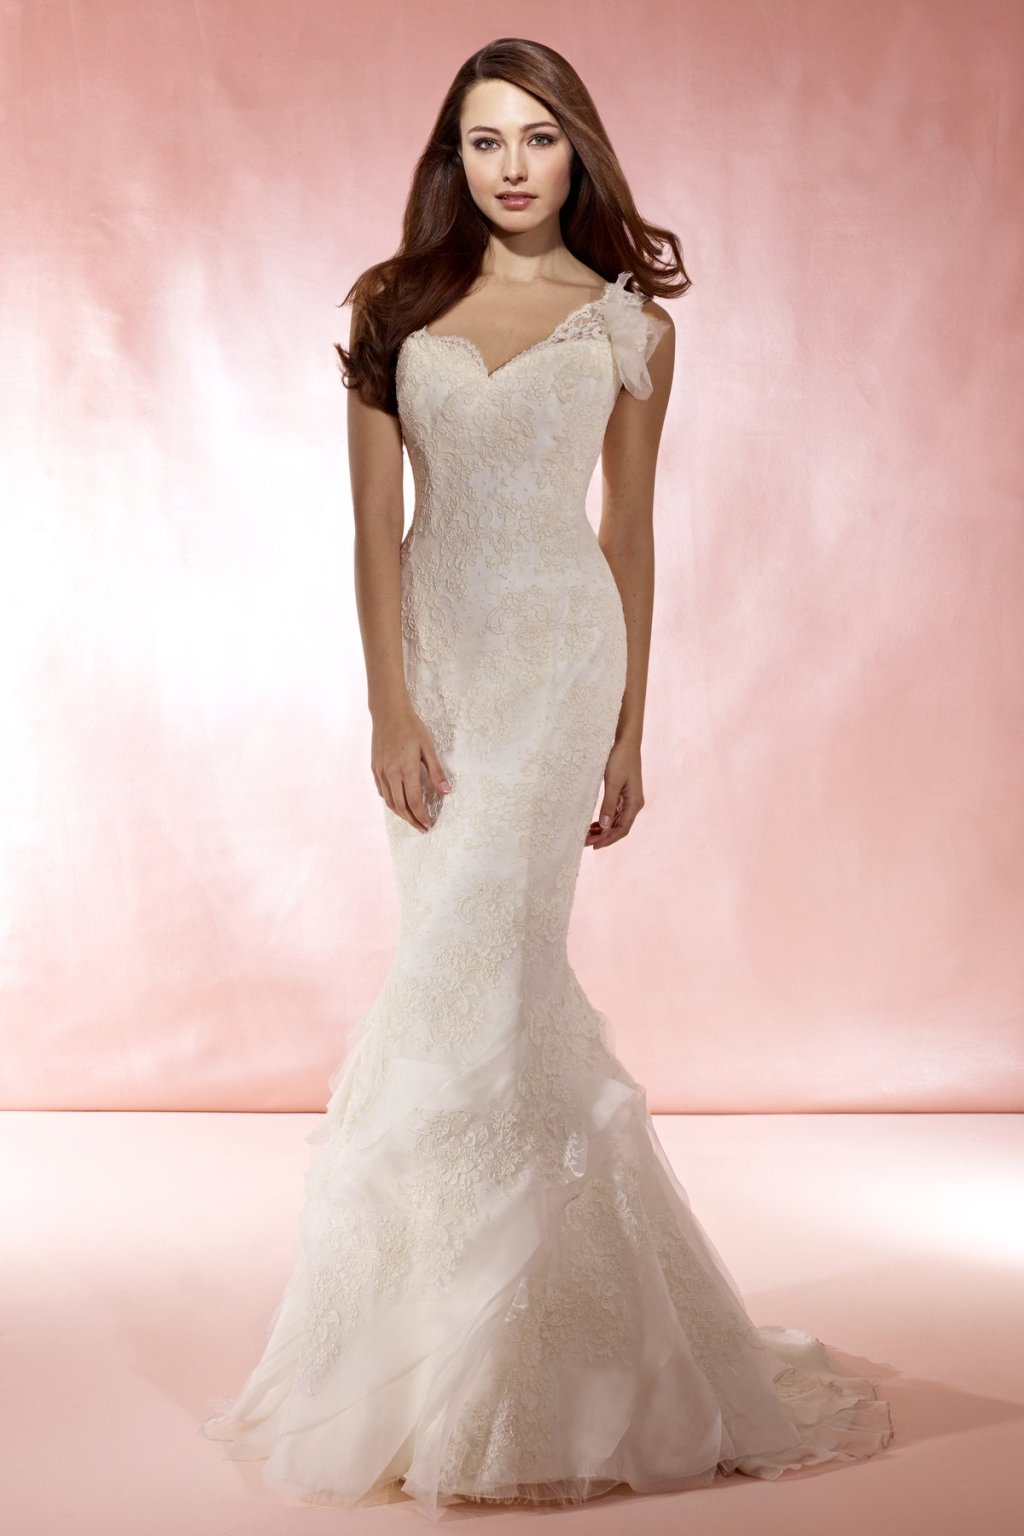 Marisa Bridal Spring 2013 Collection | The FashionBrides